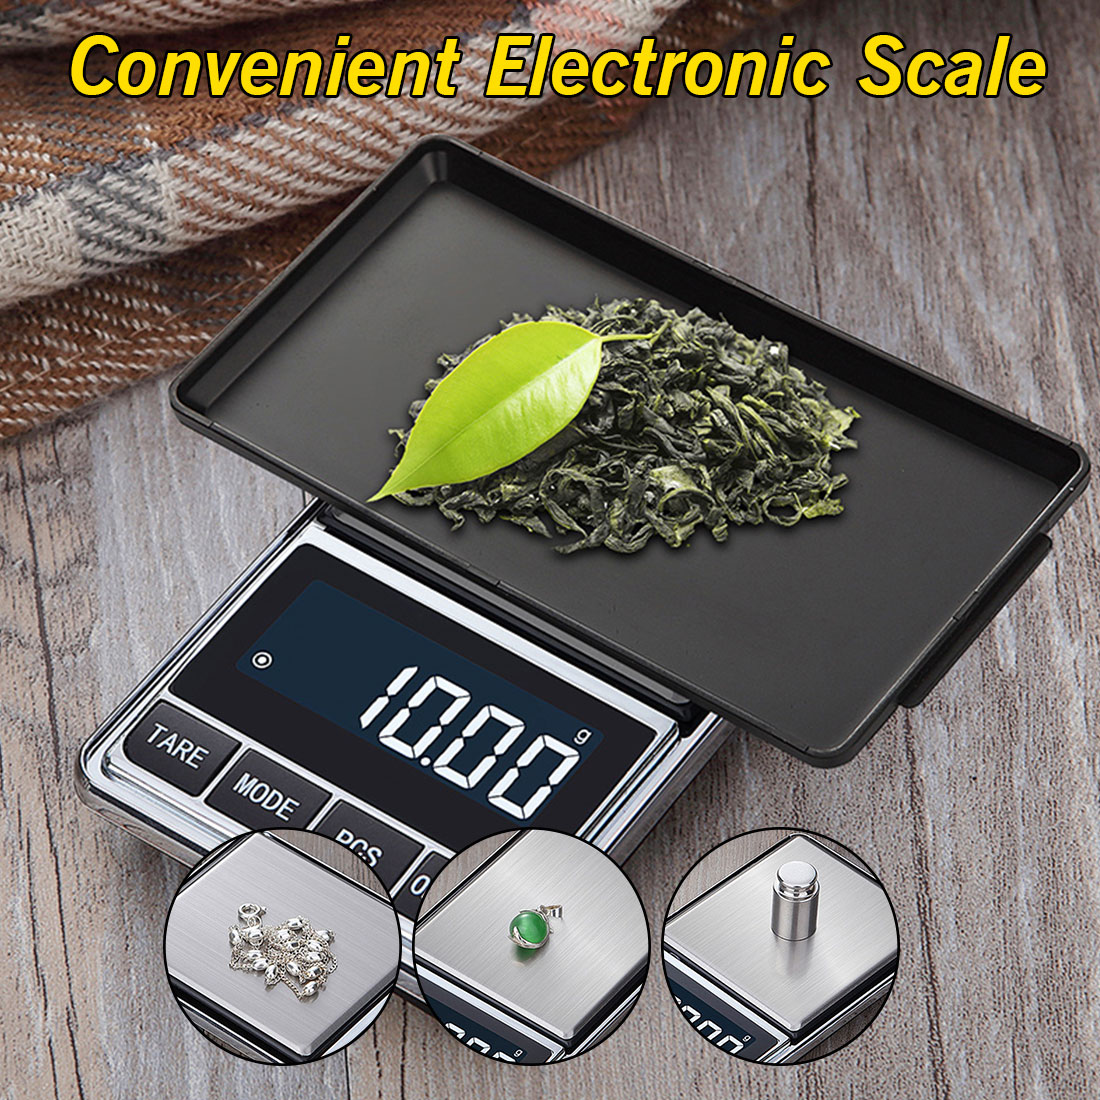 500g/100g x 0.01g Electronic Jewelry Scale Digital Pocket Weight Mini Precision Balance USB Powered LCD Gold Gram Weighing Scale